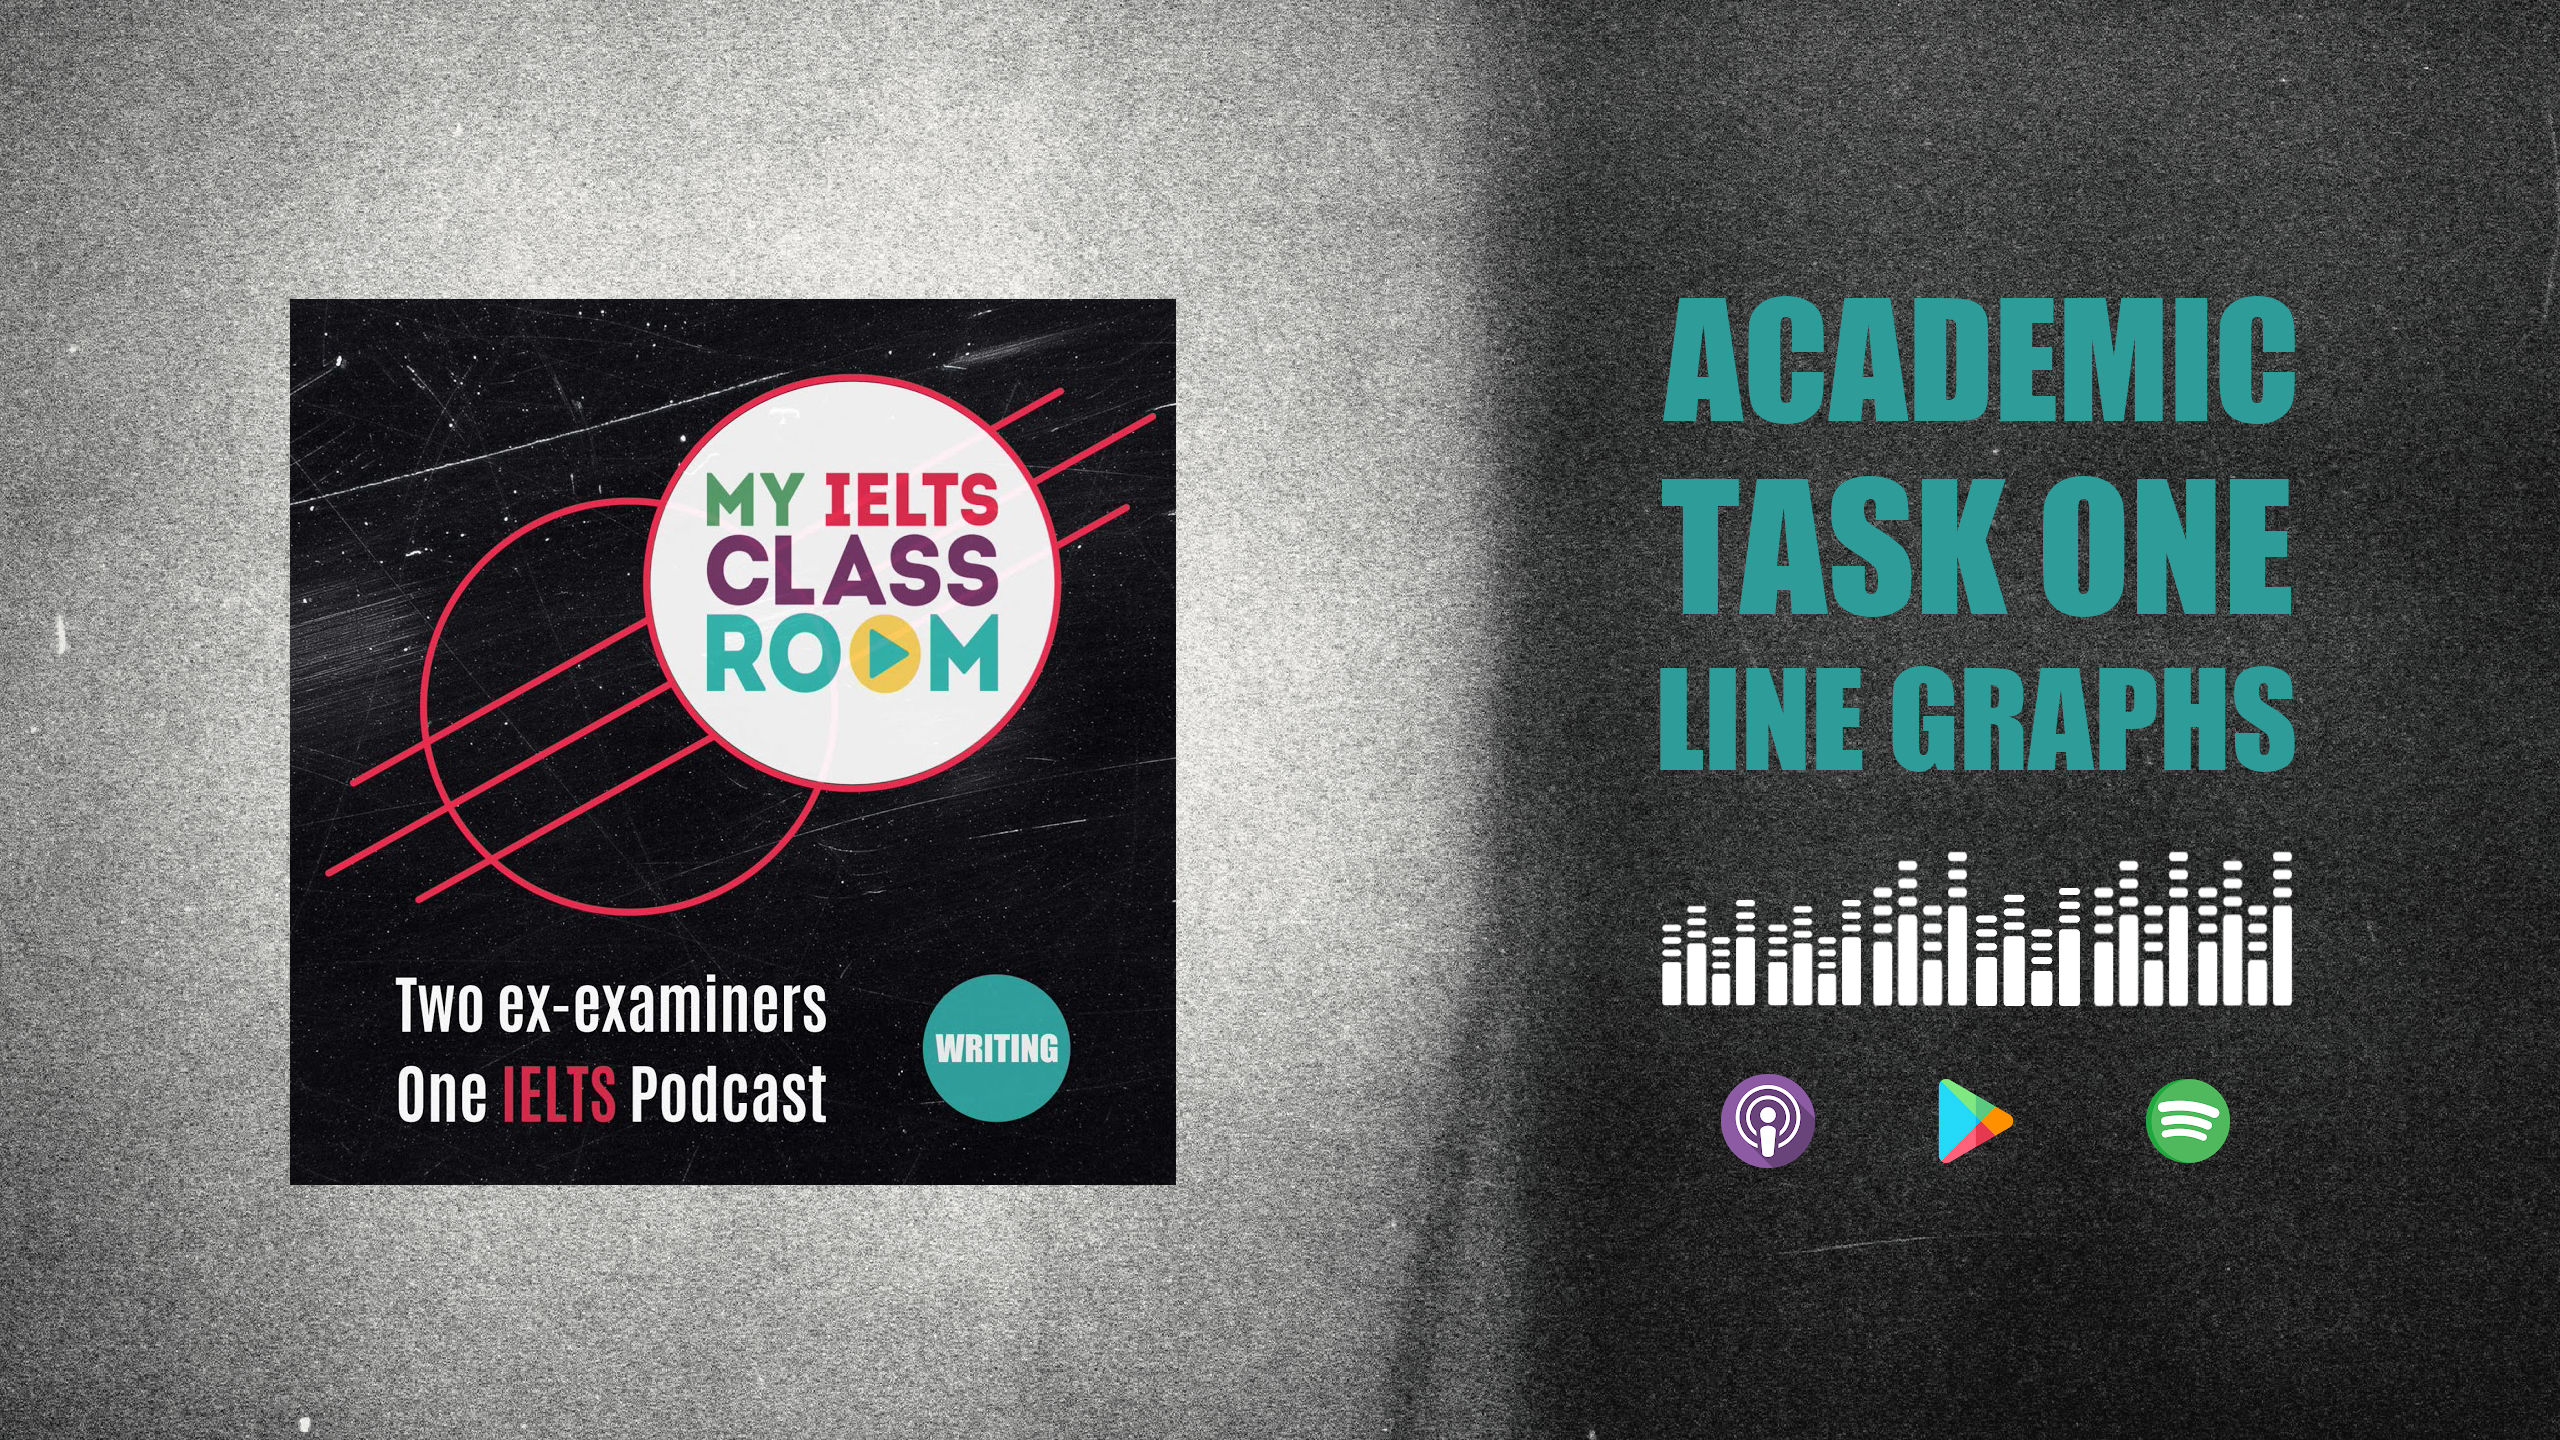 The words IELTS line graph sit next to the Album cover for the My IELTS Classroom album cover